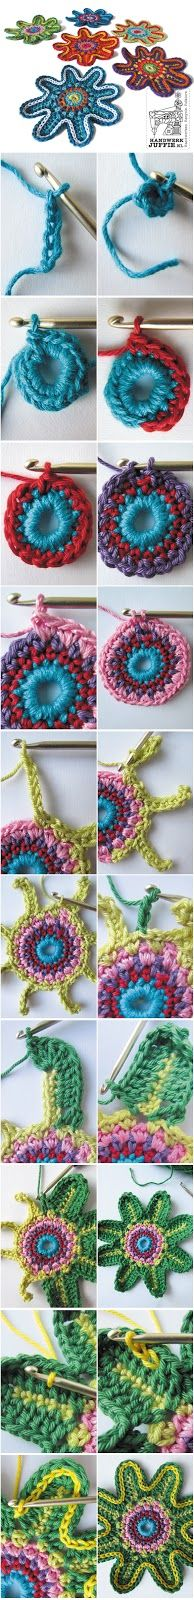 TUTORIAL: Crochet colorful flowers. By Handwerkjuffie.